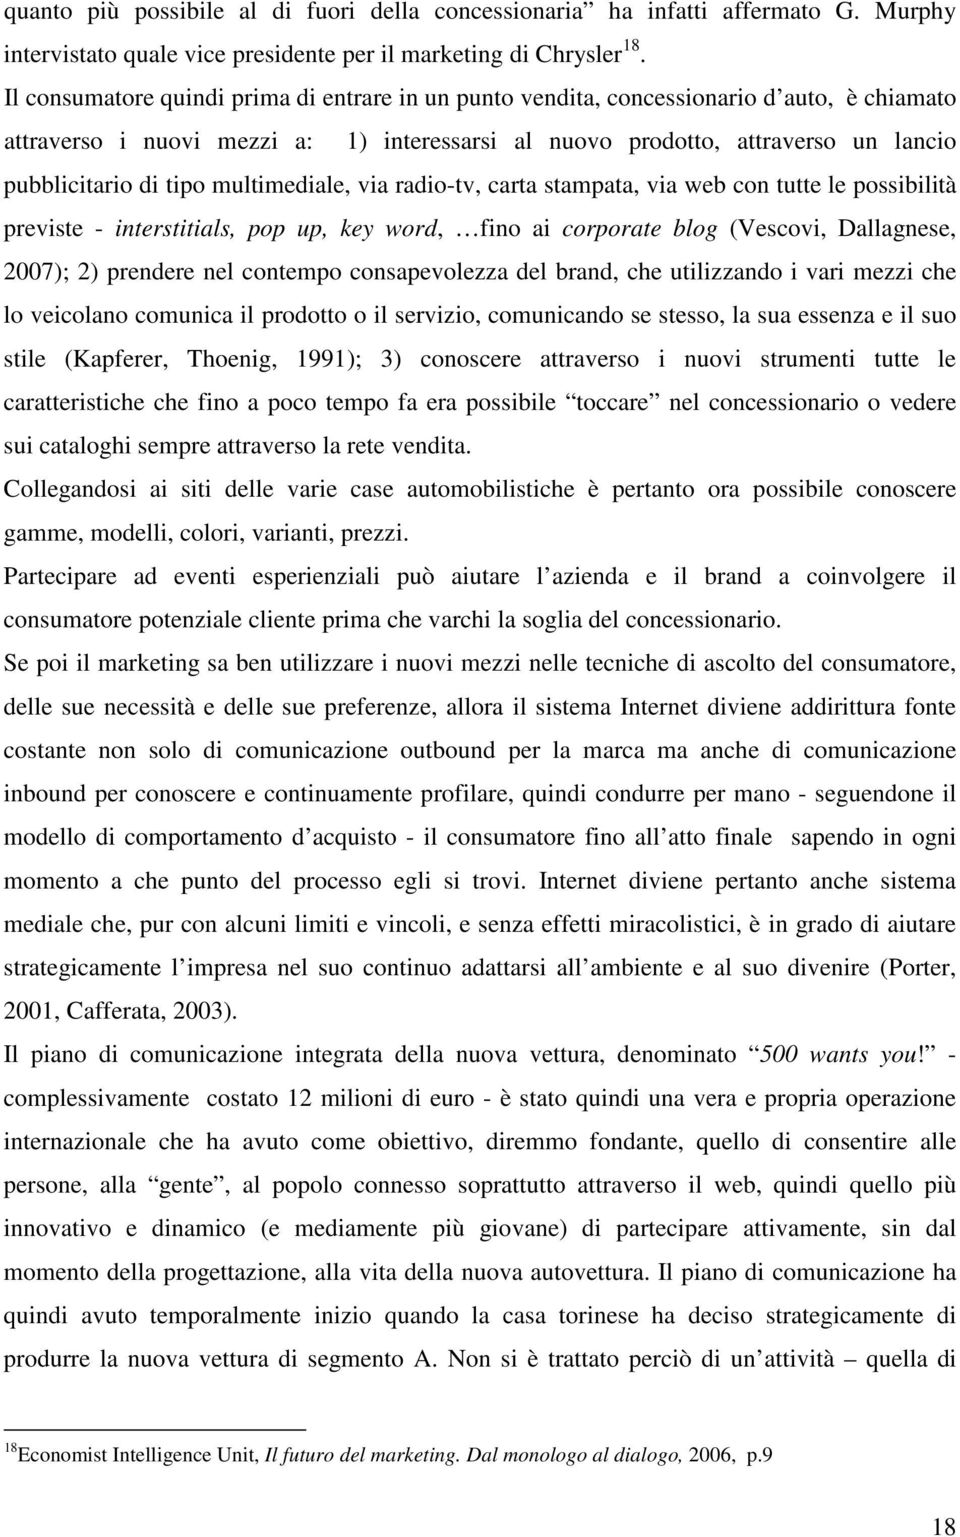 multimediale, via radio-tv, carta stampata, via web con tutte le possibilità previste - interstitials, pop up, key word, fino ai corporate blog (Vescovi, Dallagnese, 2007); 2) prendere nel contempo